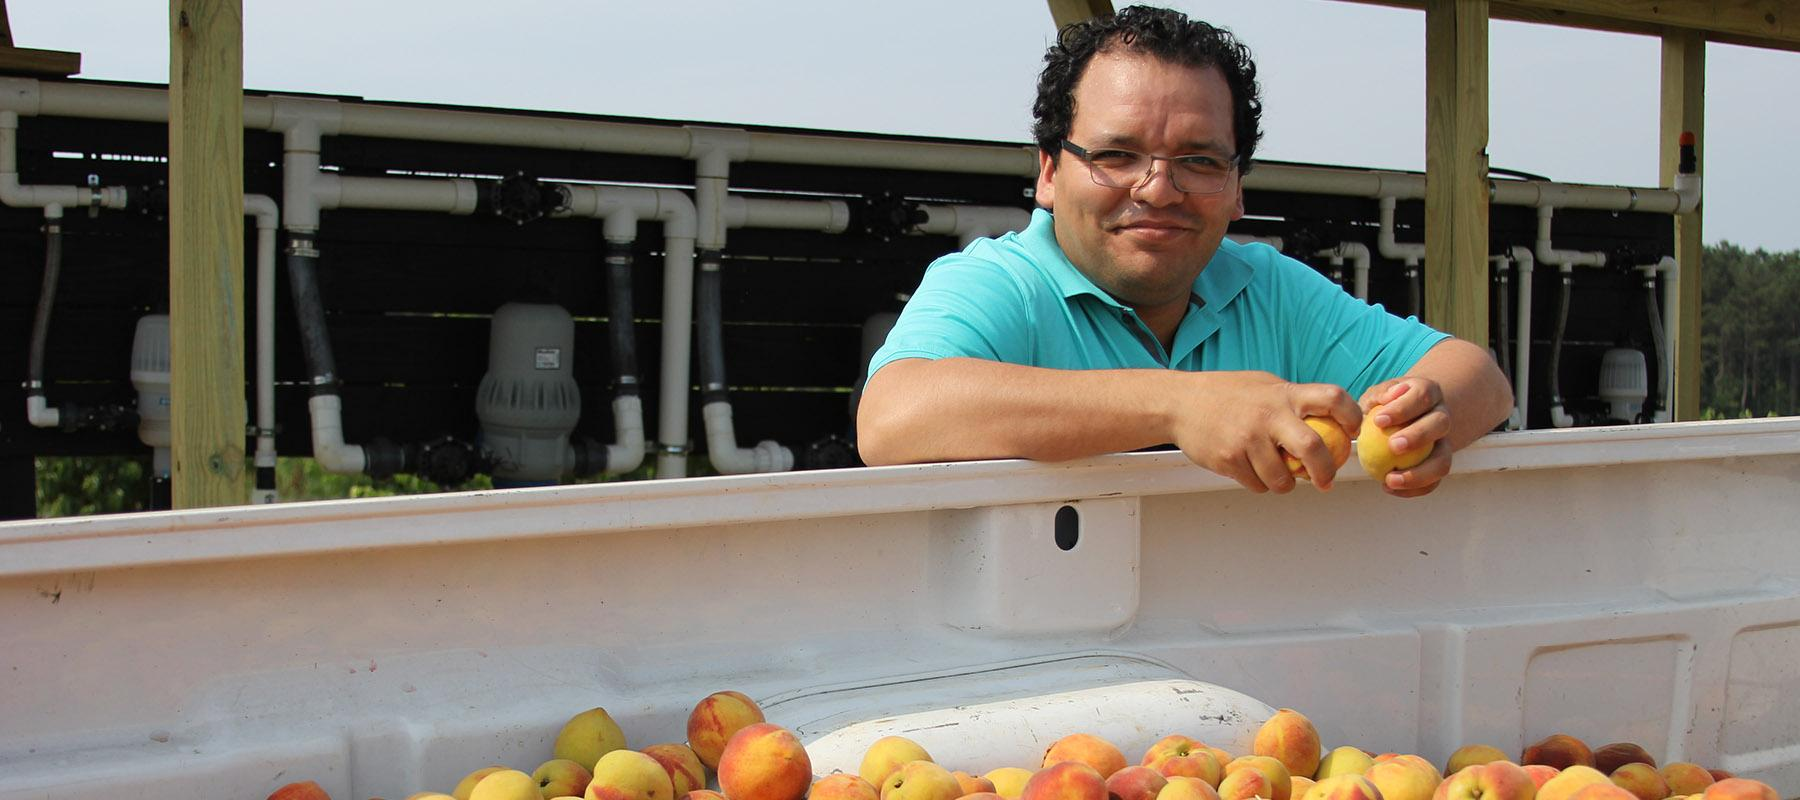 Dr. Dario Chavez poses with a truckload of his research peaches